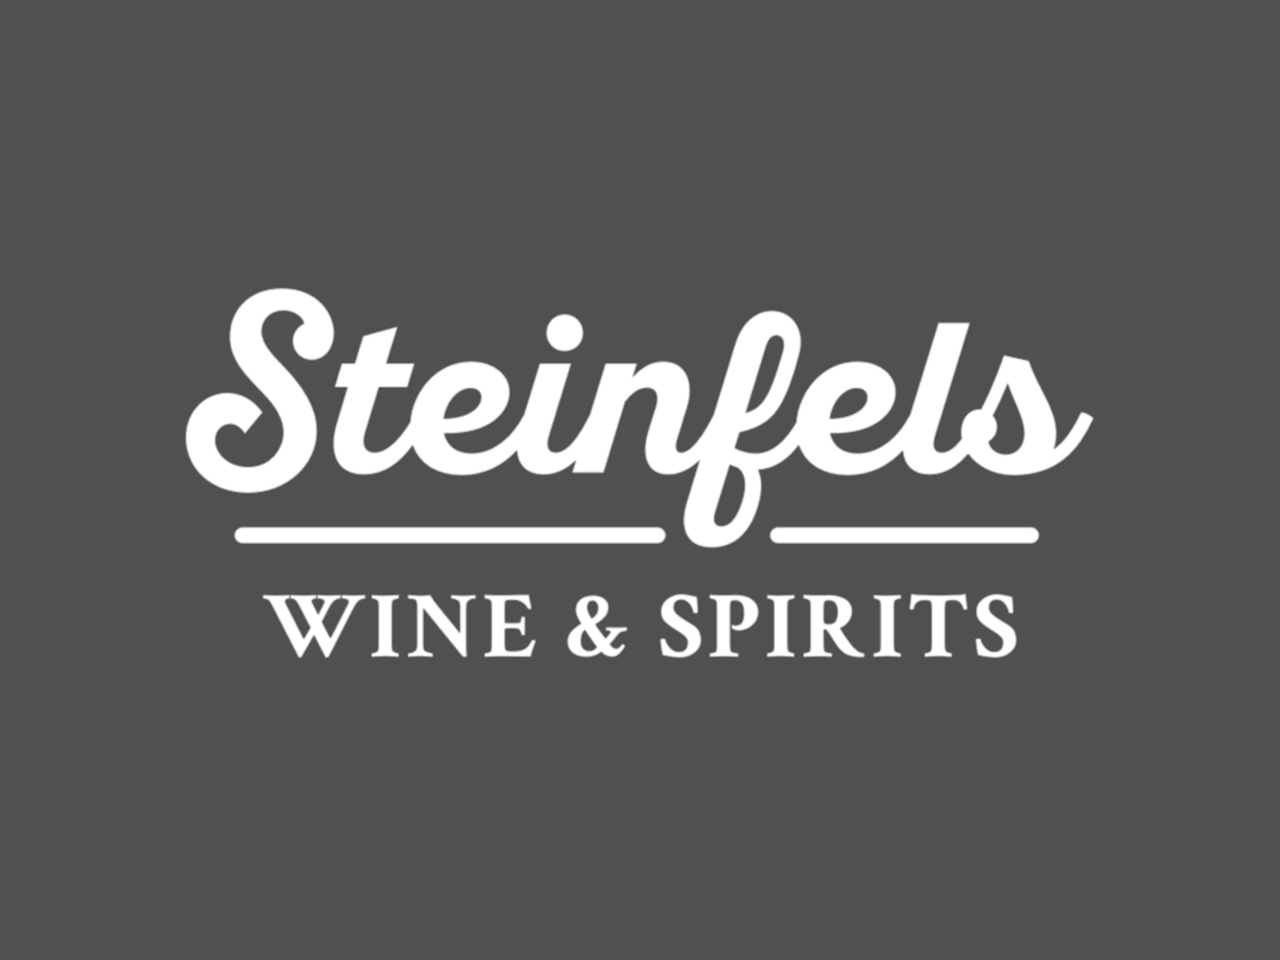 New Steinfels logo from 2018